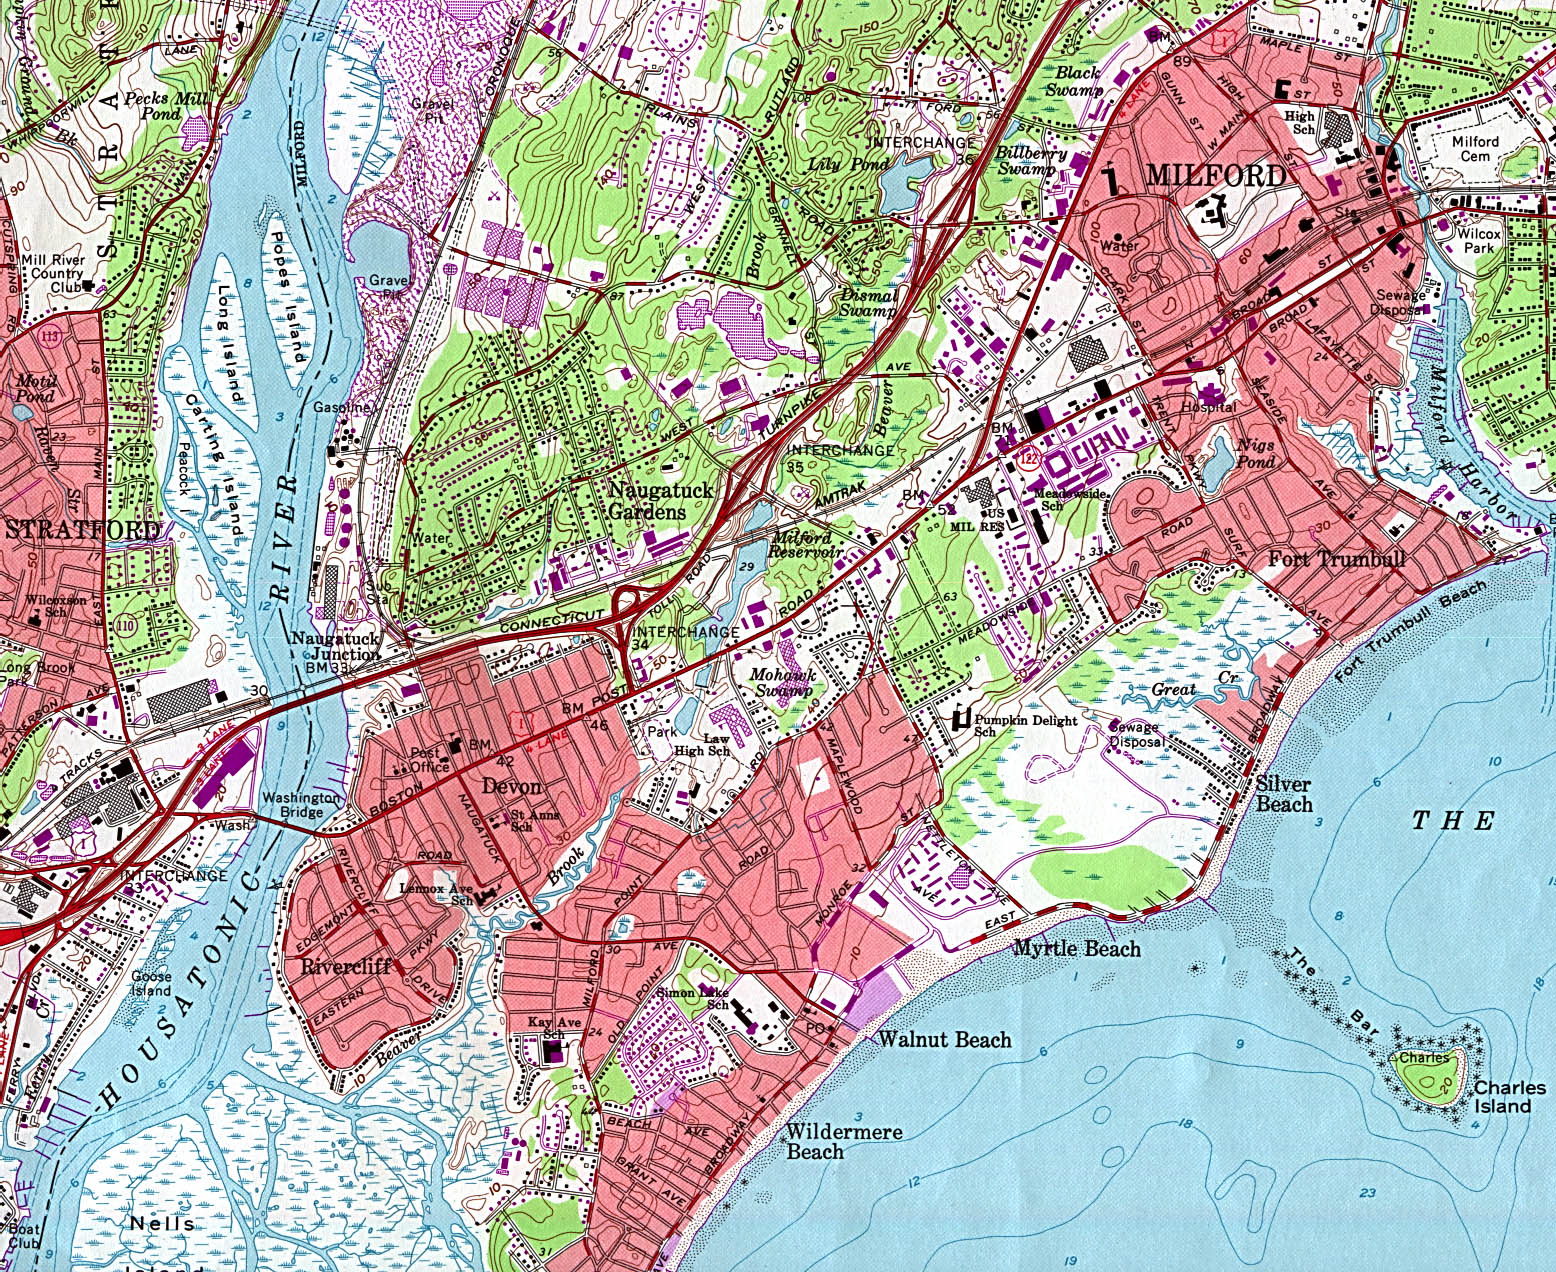 Milford Topographic City Map, Connecticut, United States